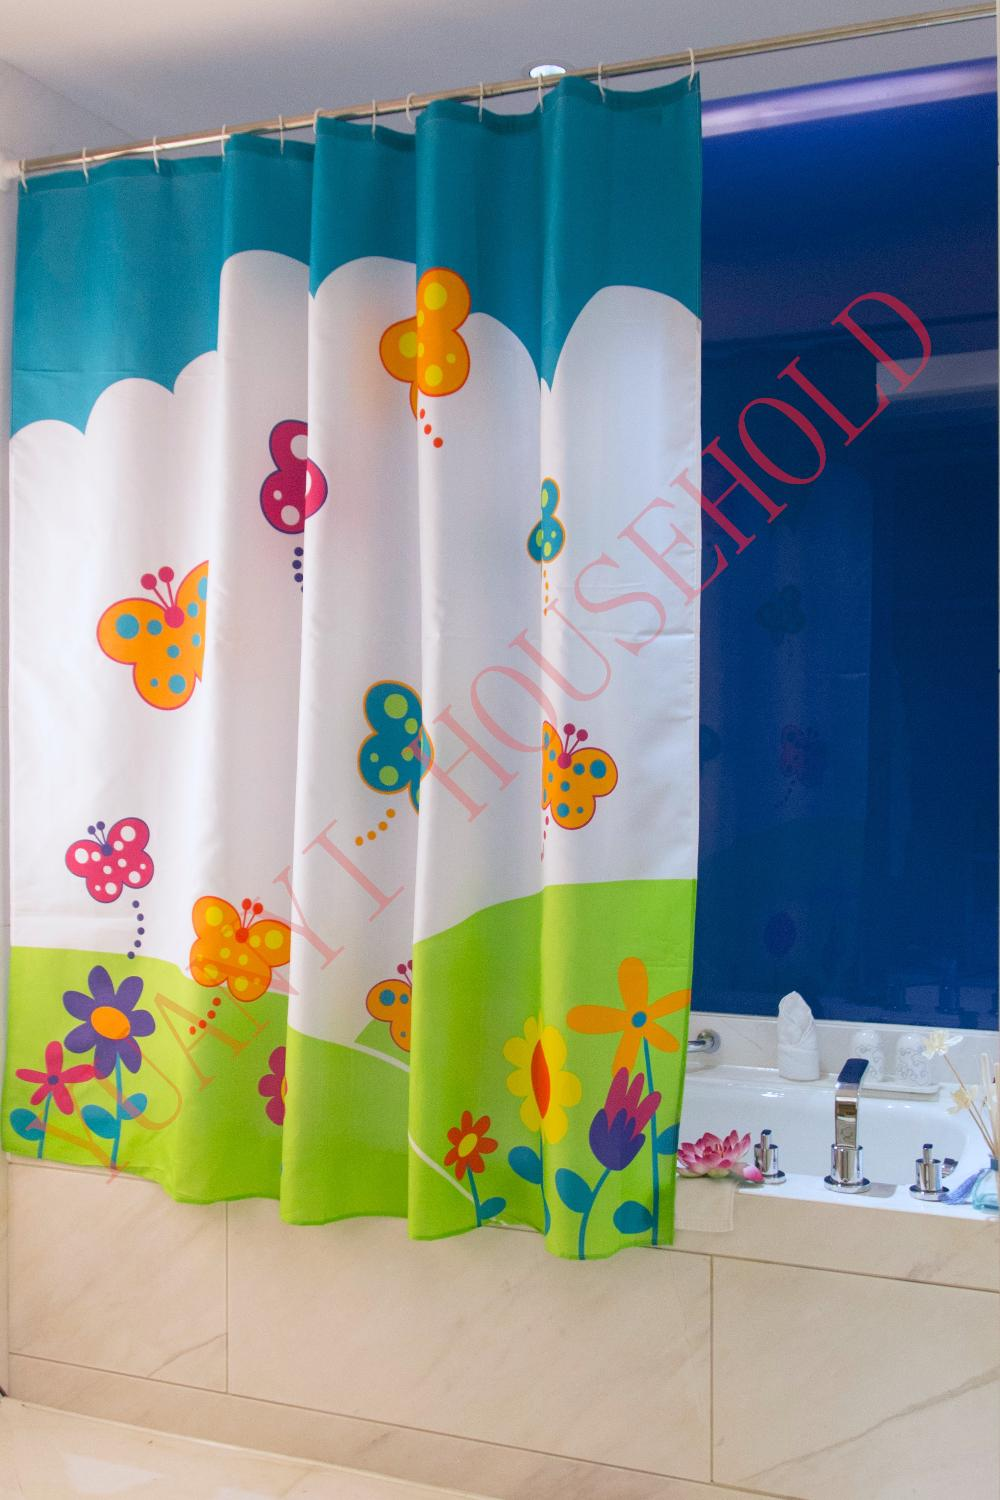 "Bathroom Decoration Polyester Fabric Printed Butterfly Style Shower Curtains Liner Waterproof Bath Curtains 72*72"" 12Pcs Hooks(China (Mainland))"